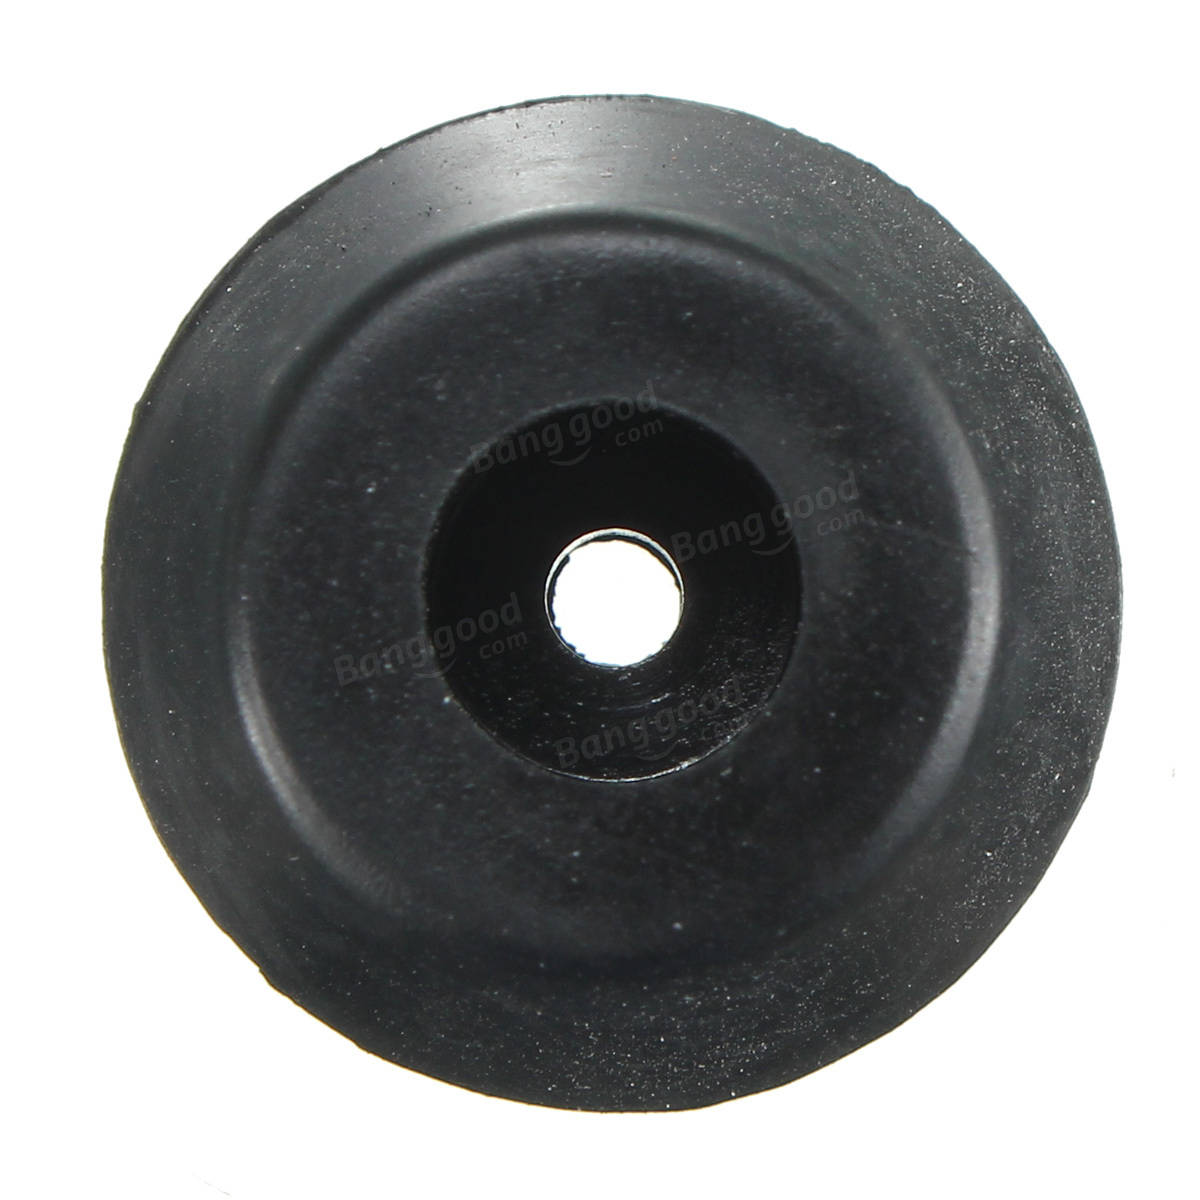 rubber chair feet bunnings office max chairs 12pcs 25x20x15mm black protector for leg